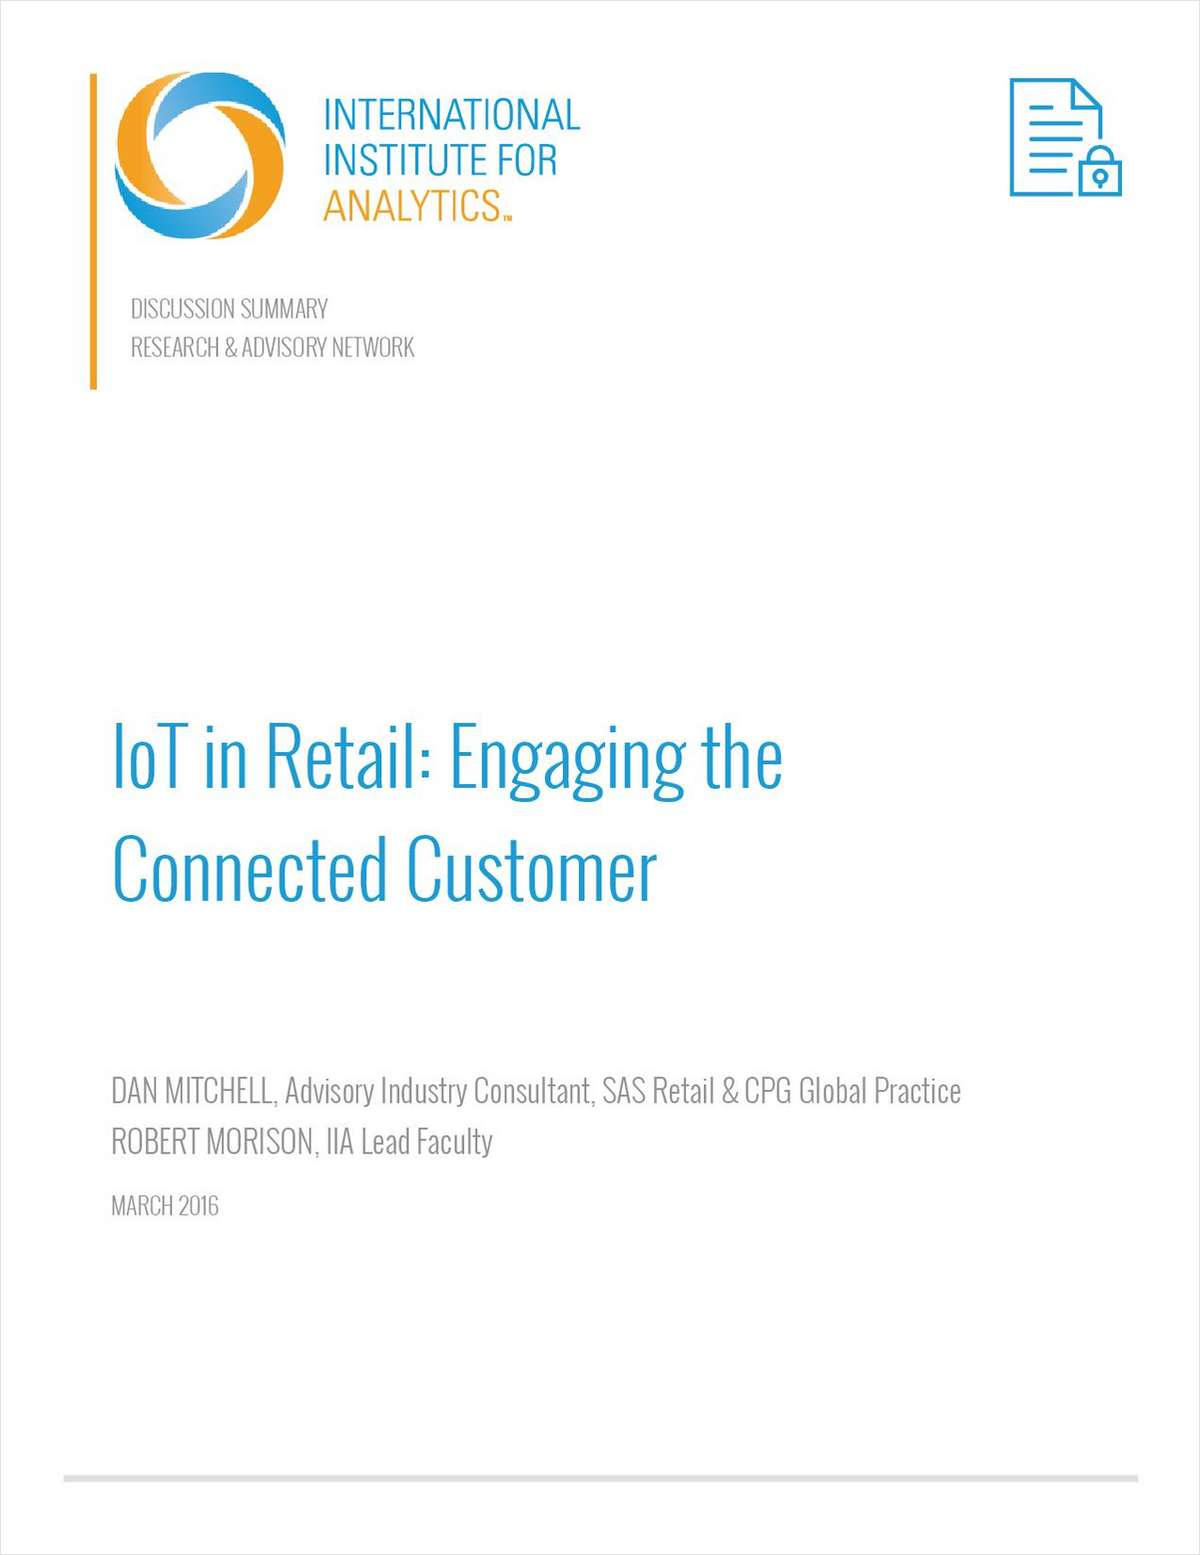 IIA: IoT in Retail: Engaging the Connected Customer